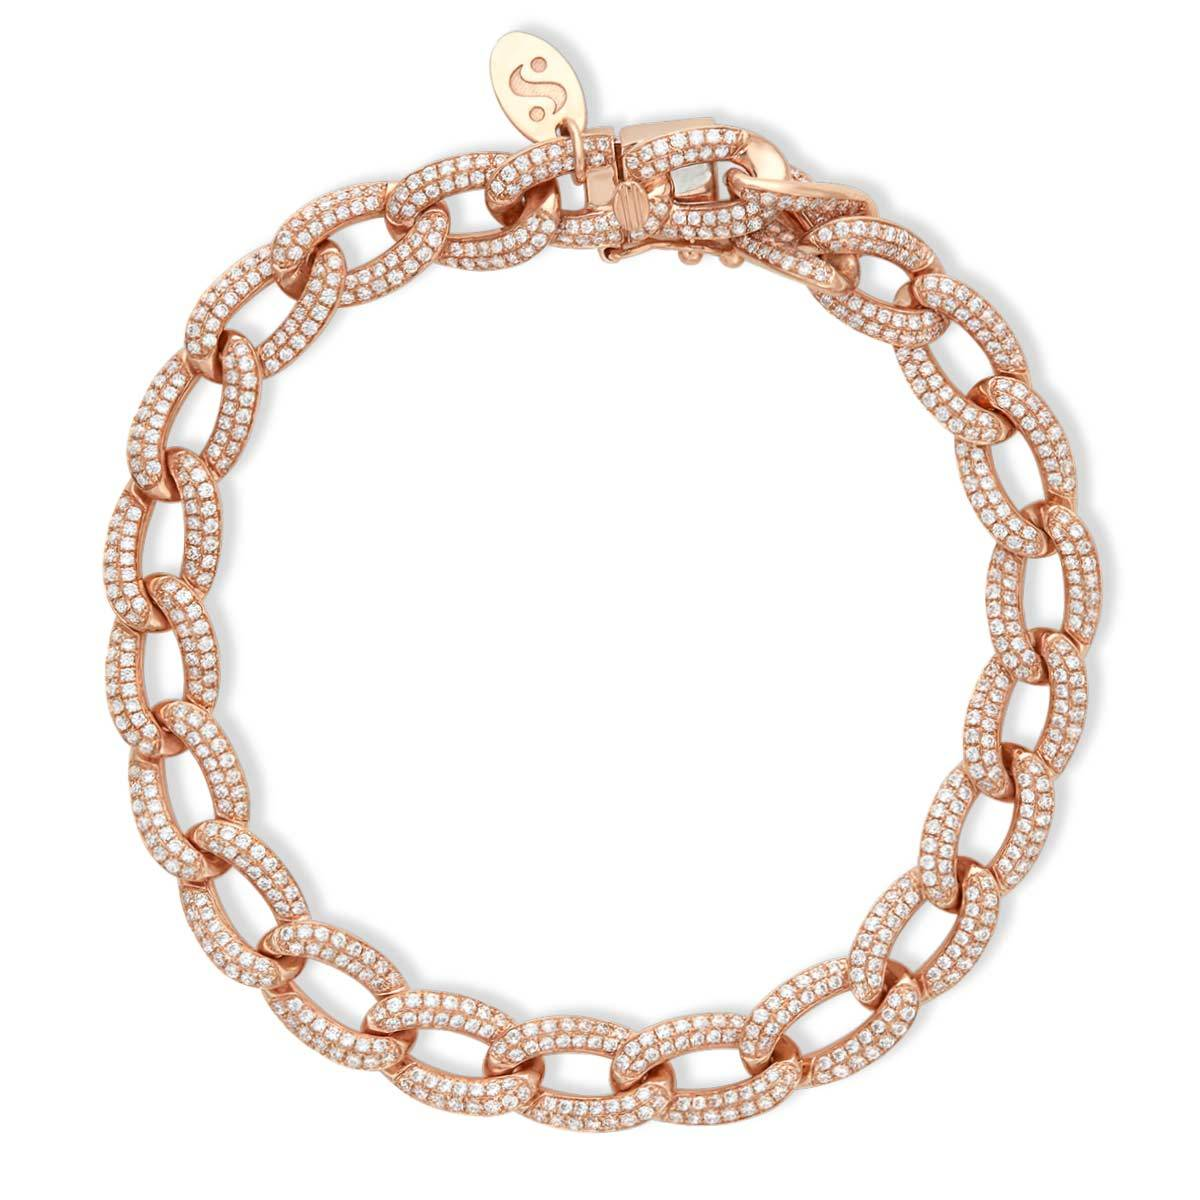 Oval Cuban Link Bracelet - Serena Williams Jewelry